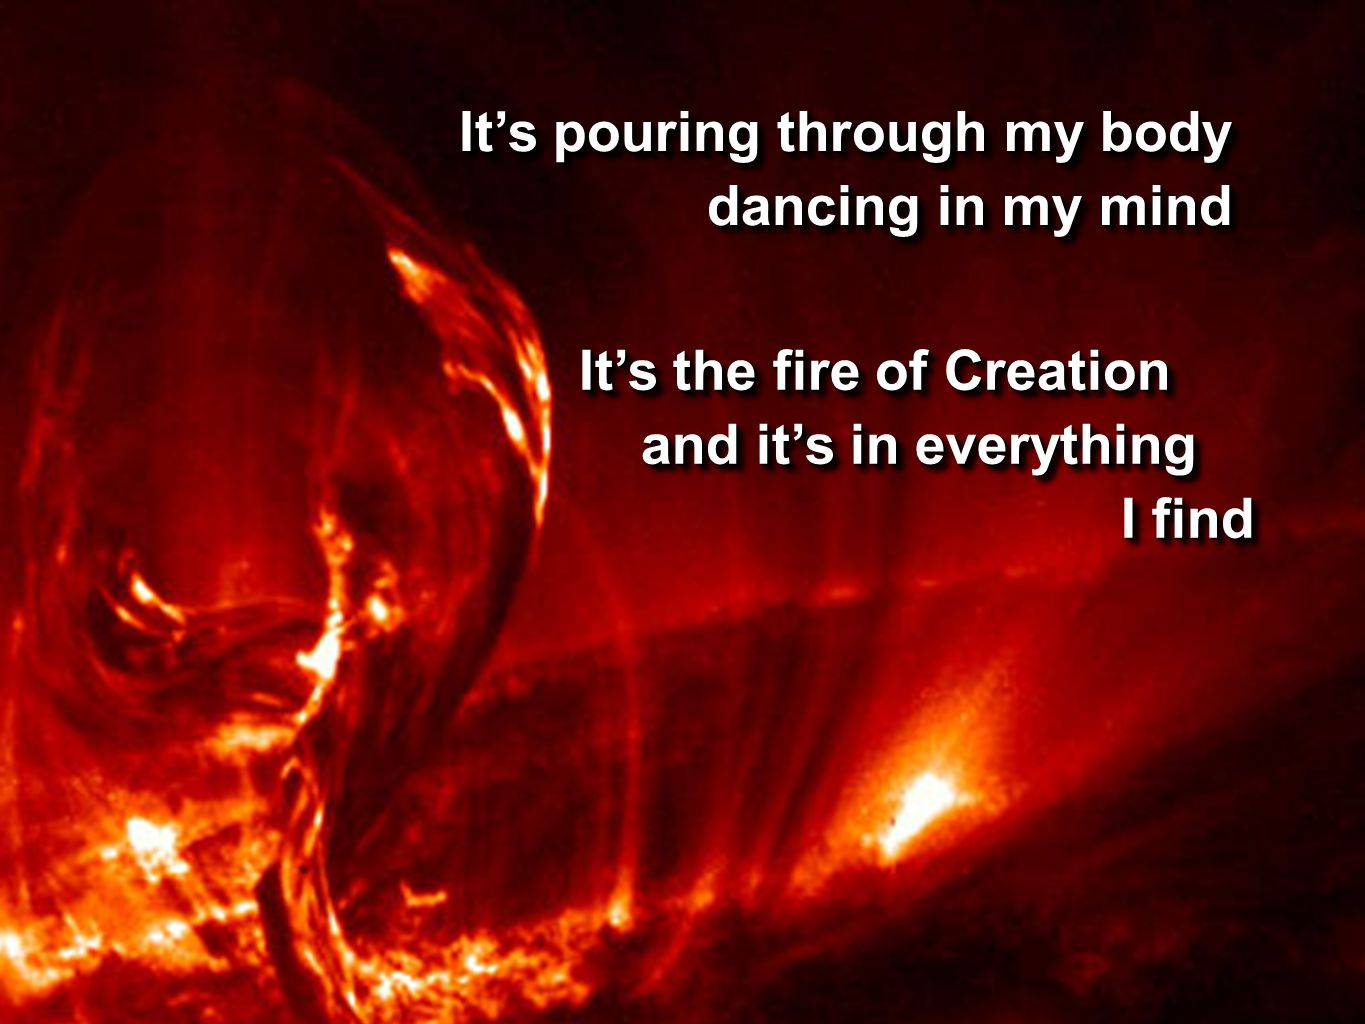 It's pouring through my body dancing in my mind dancing in my mind It's pouring through my body dancing in my mind dancing in my mind It's the fire of Creation and it's in everything and it's in everything I find I find It's the fire of Creation and it's in everything and it's in everything I find I find